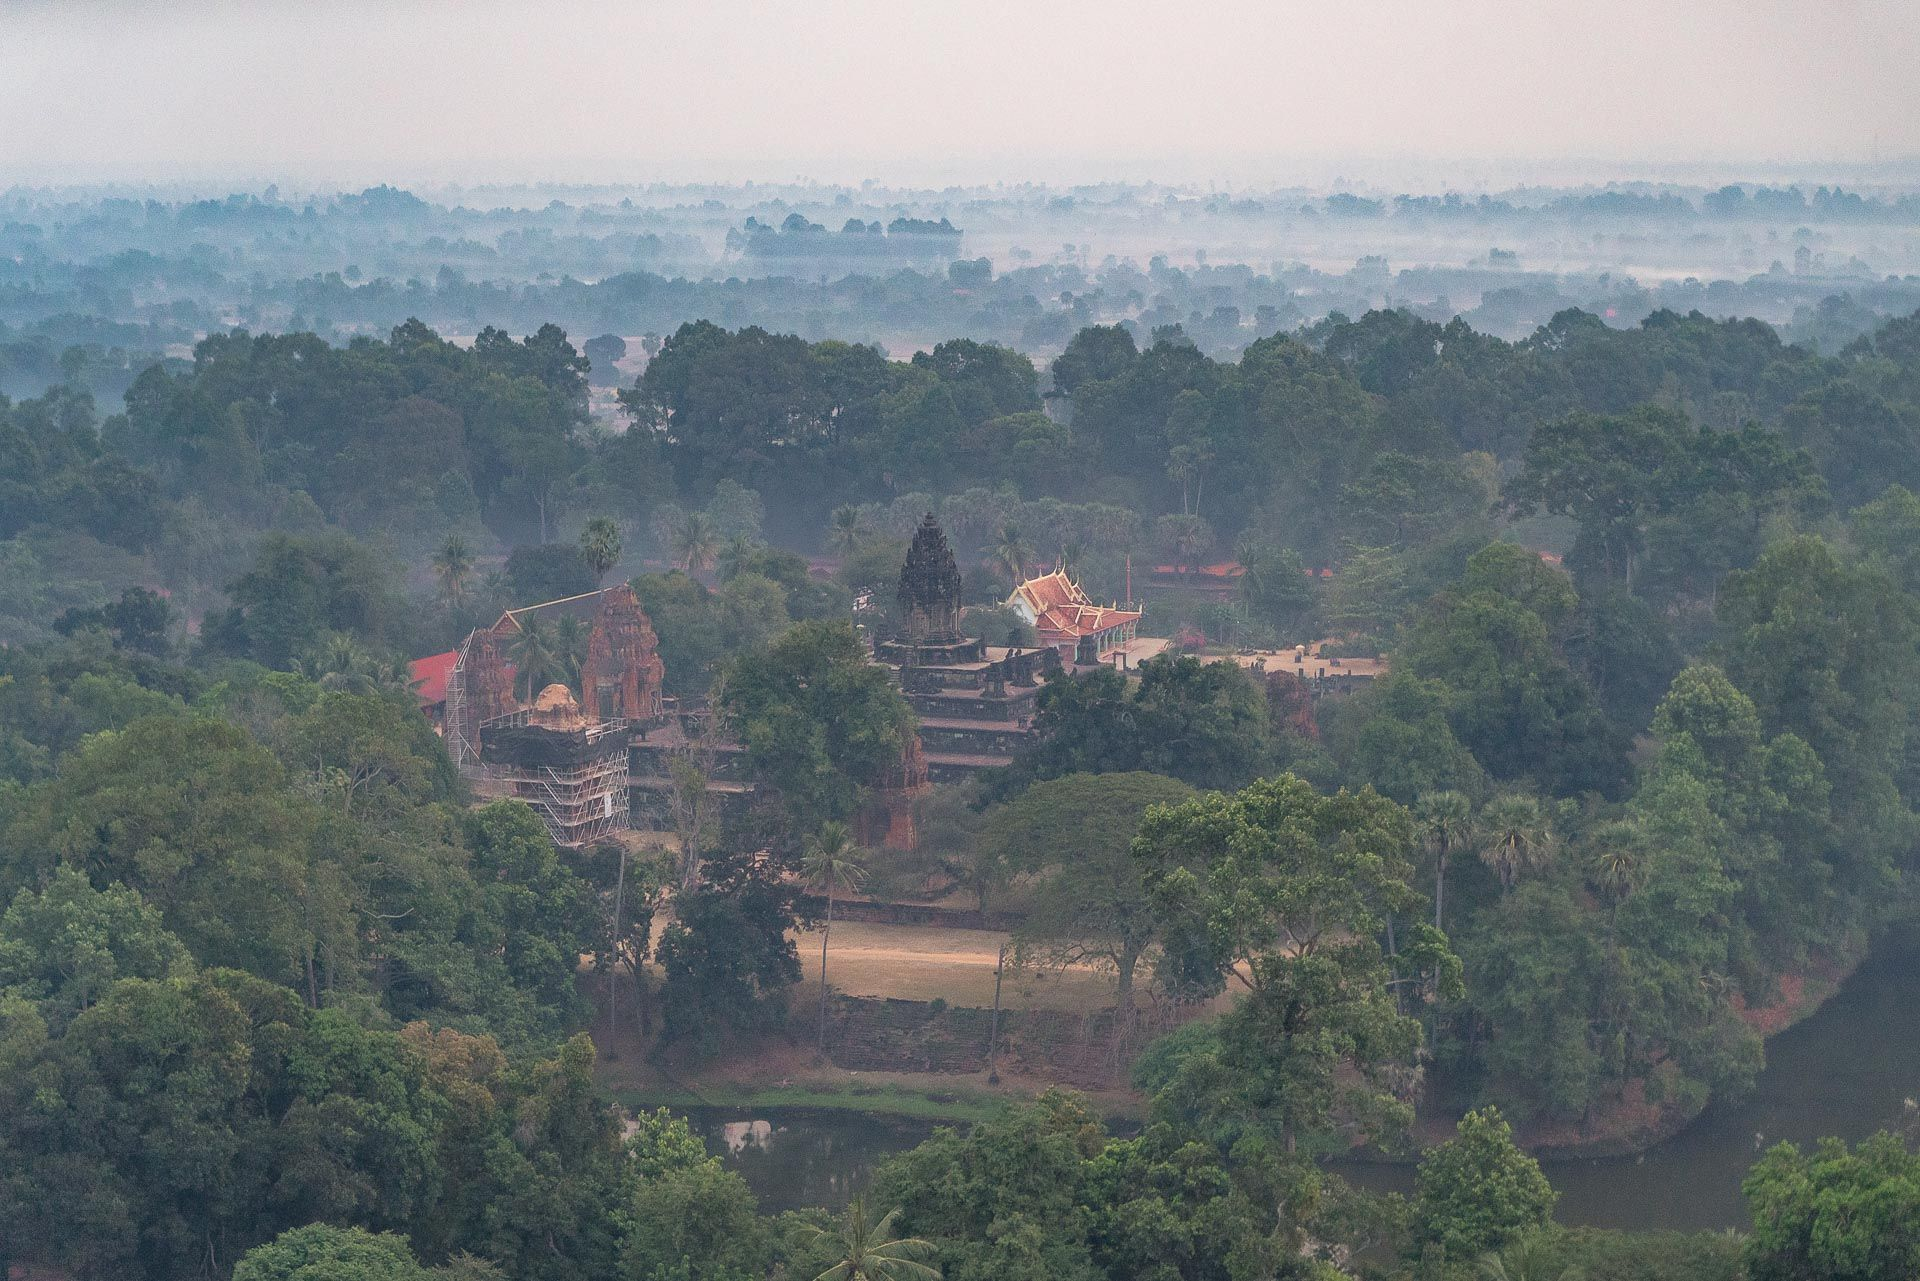 Lesvoyageuses-guide-voyage-siem-reap-angkor-cambodge-montgolfiere-eoasia-6